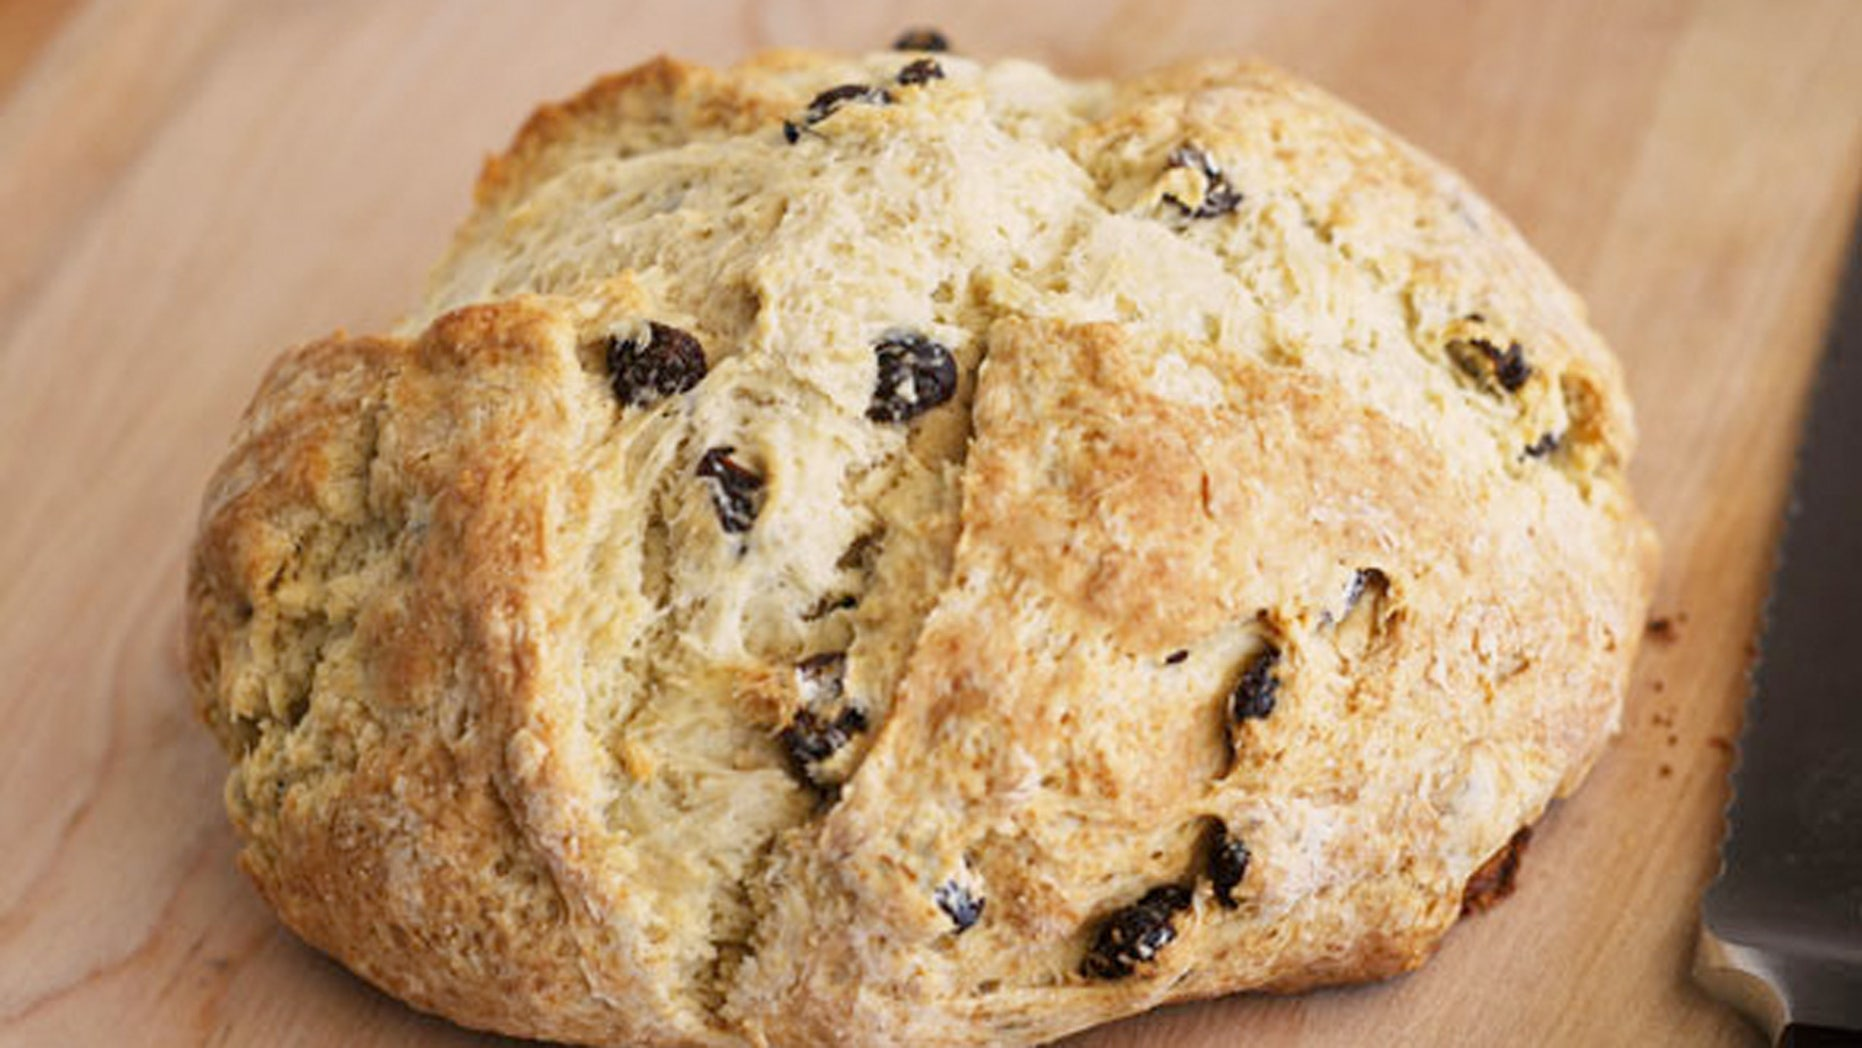 The cross on the top of the Irish soda bread has Christian and superstitious meanings, like being there to bless the bread or to drive the devil from it.